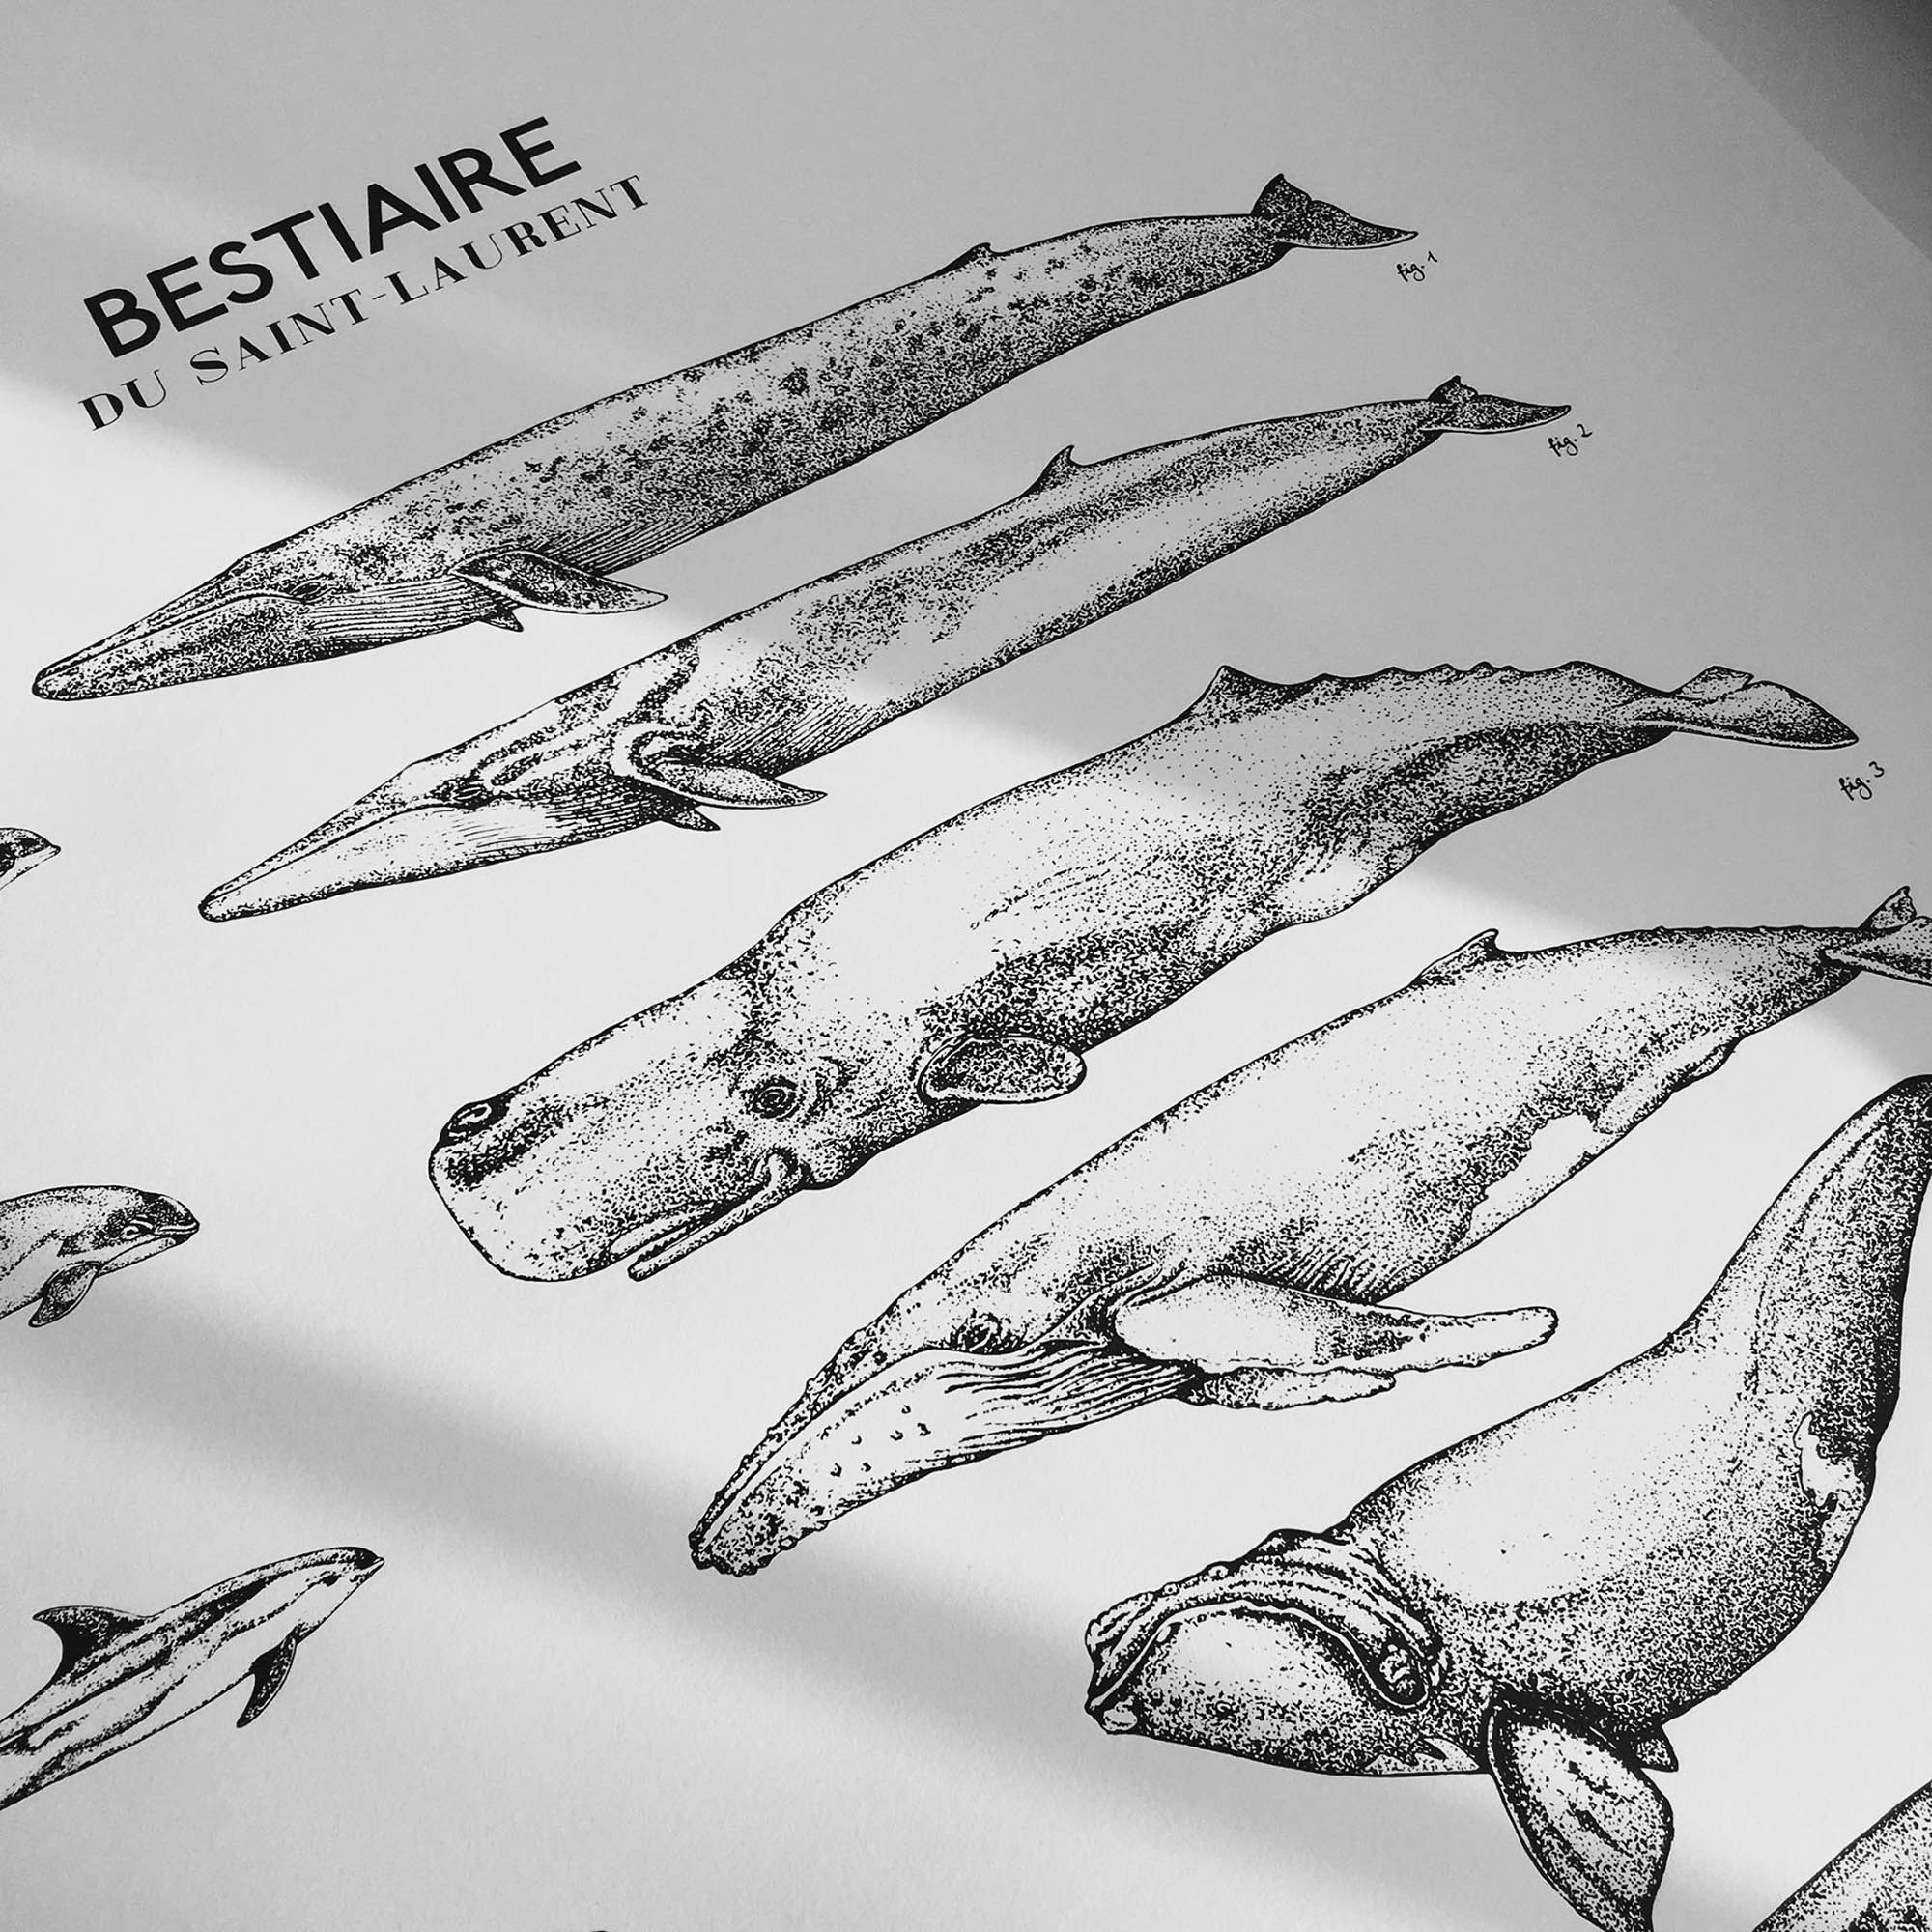 ILLUSTRATION-BALEINE-SERIGRAPHIE-FAIT-MAIN-CANADA-CREATION-DESSIN